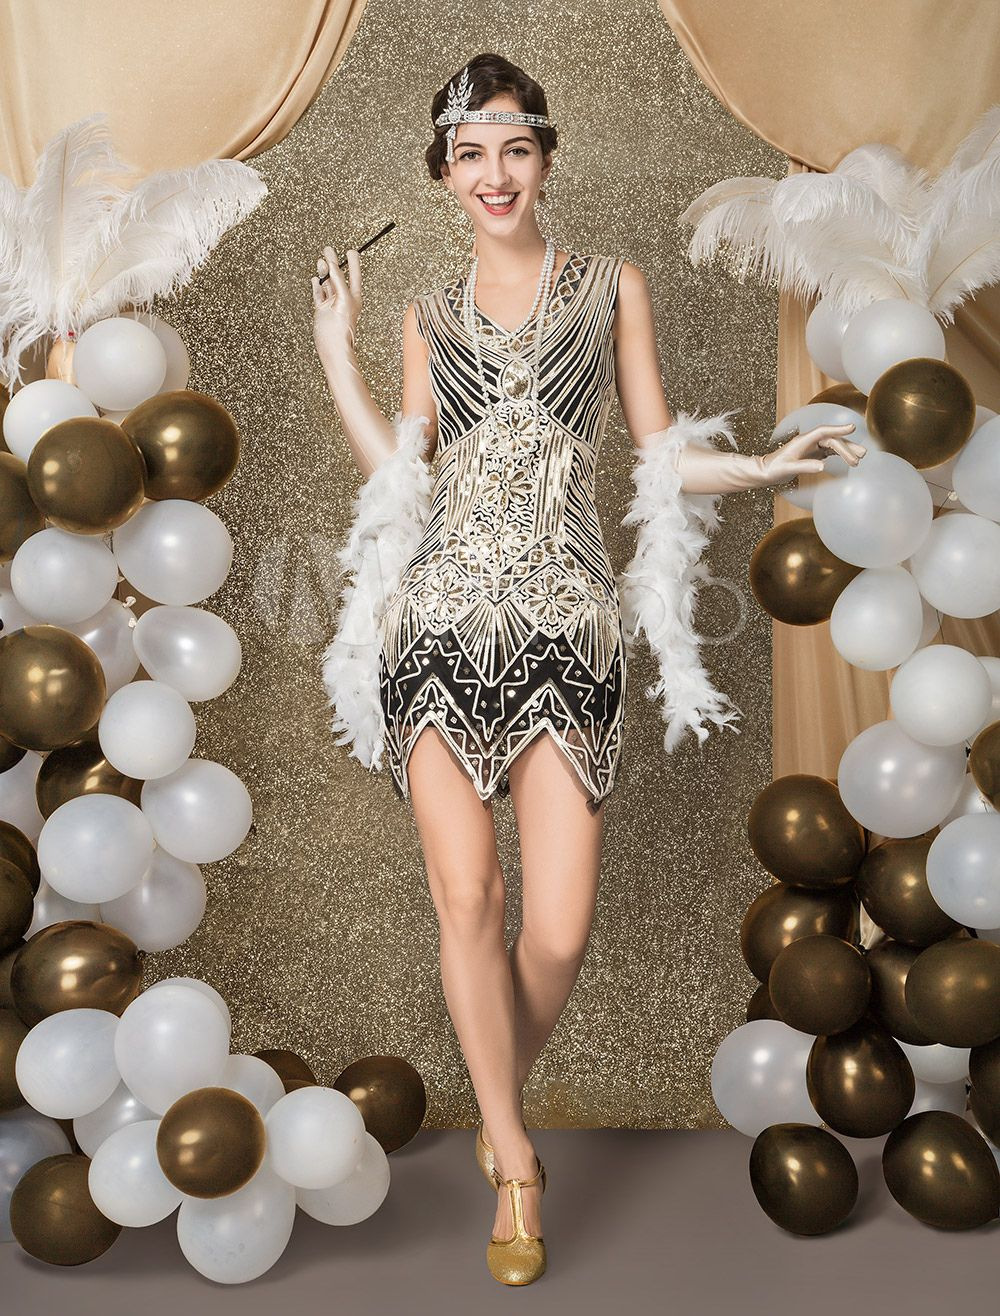 Flapper Dress 1920s Fashion Vintage Style Costume Black Great Gatsby Party Outfits Gatsby Party Dress Flapper Dress Costumes Gatsby Party Outfit [ 1316 x 1000 Pixel ]